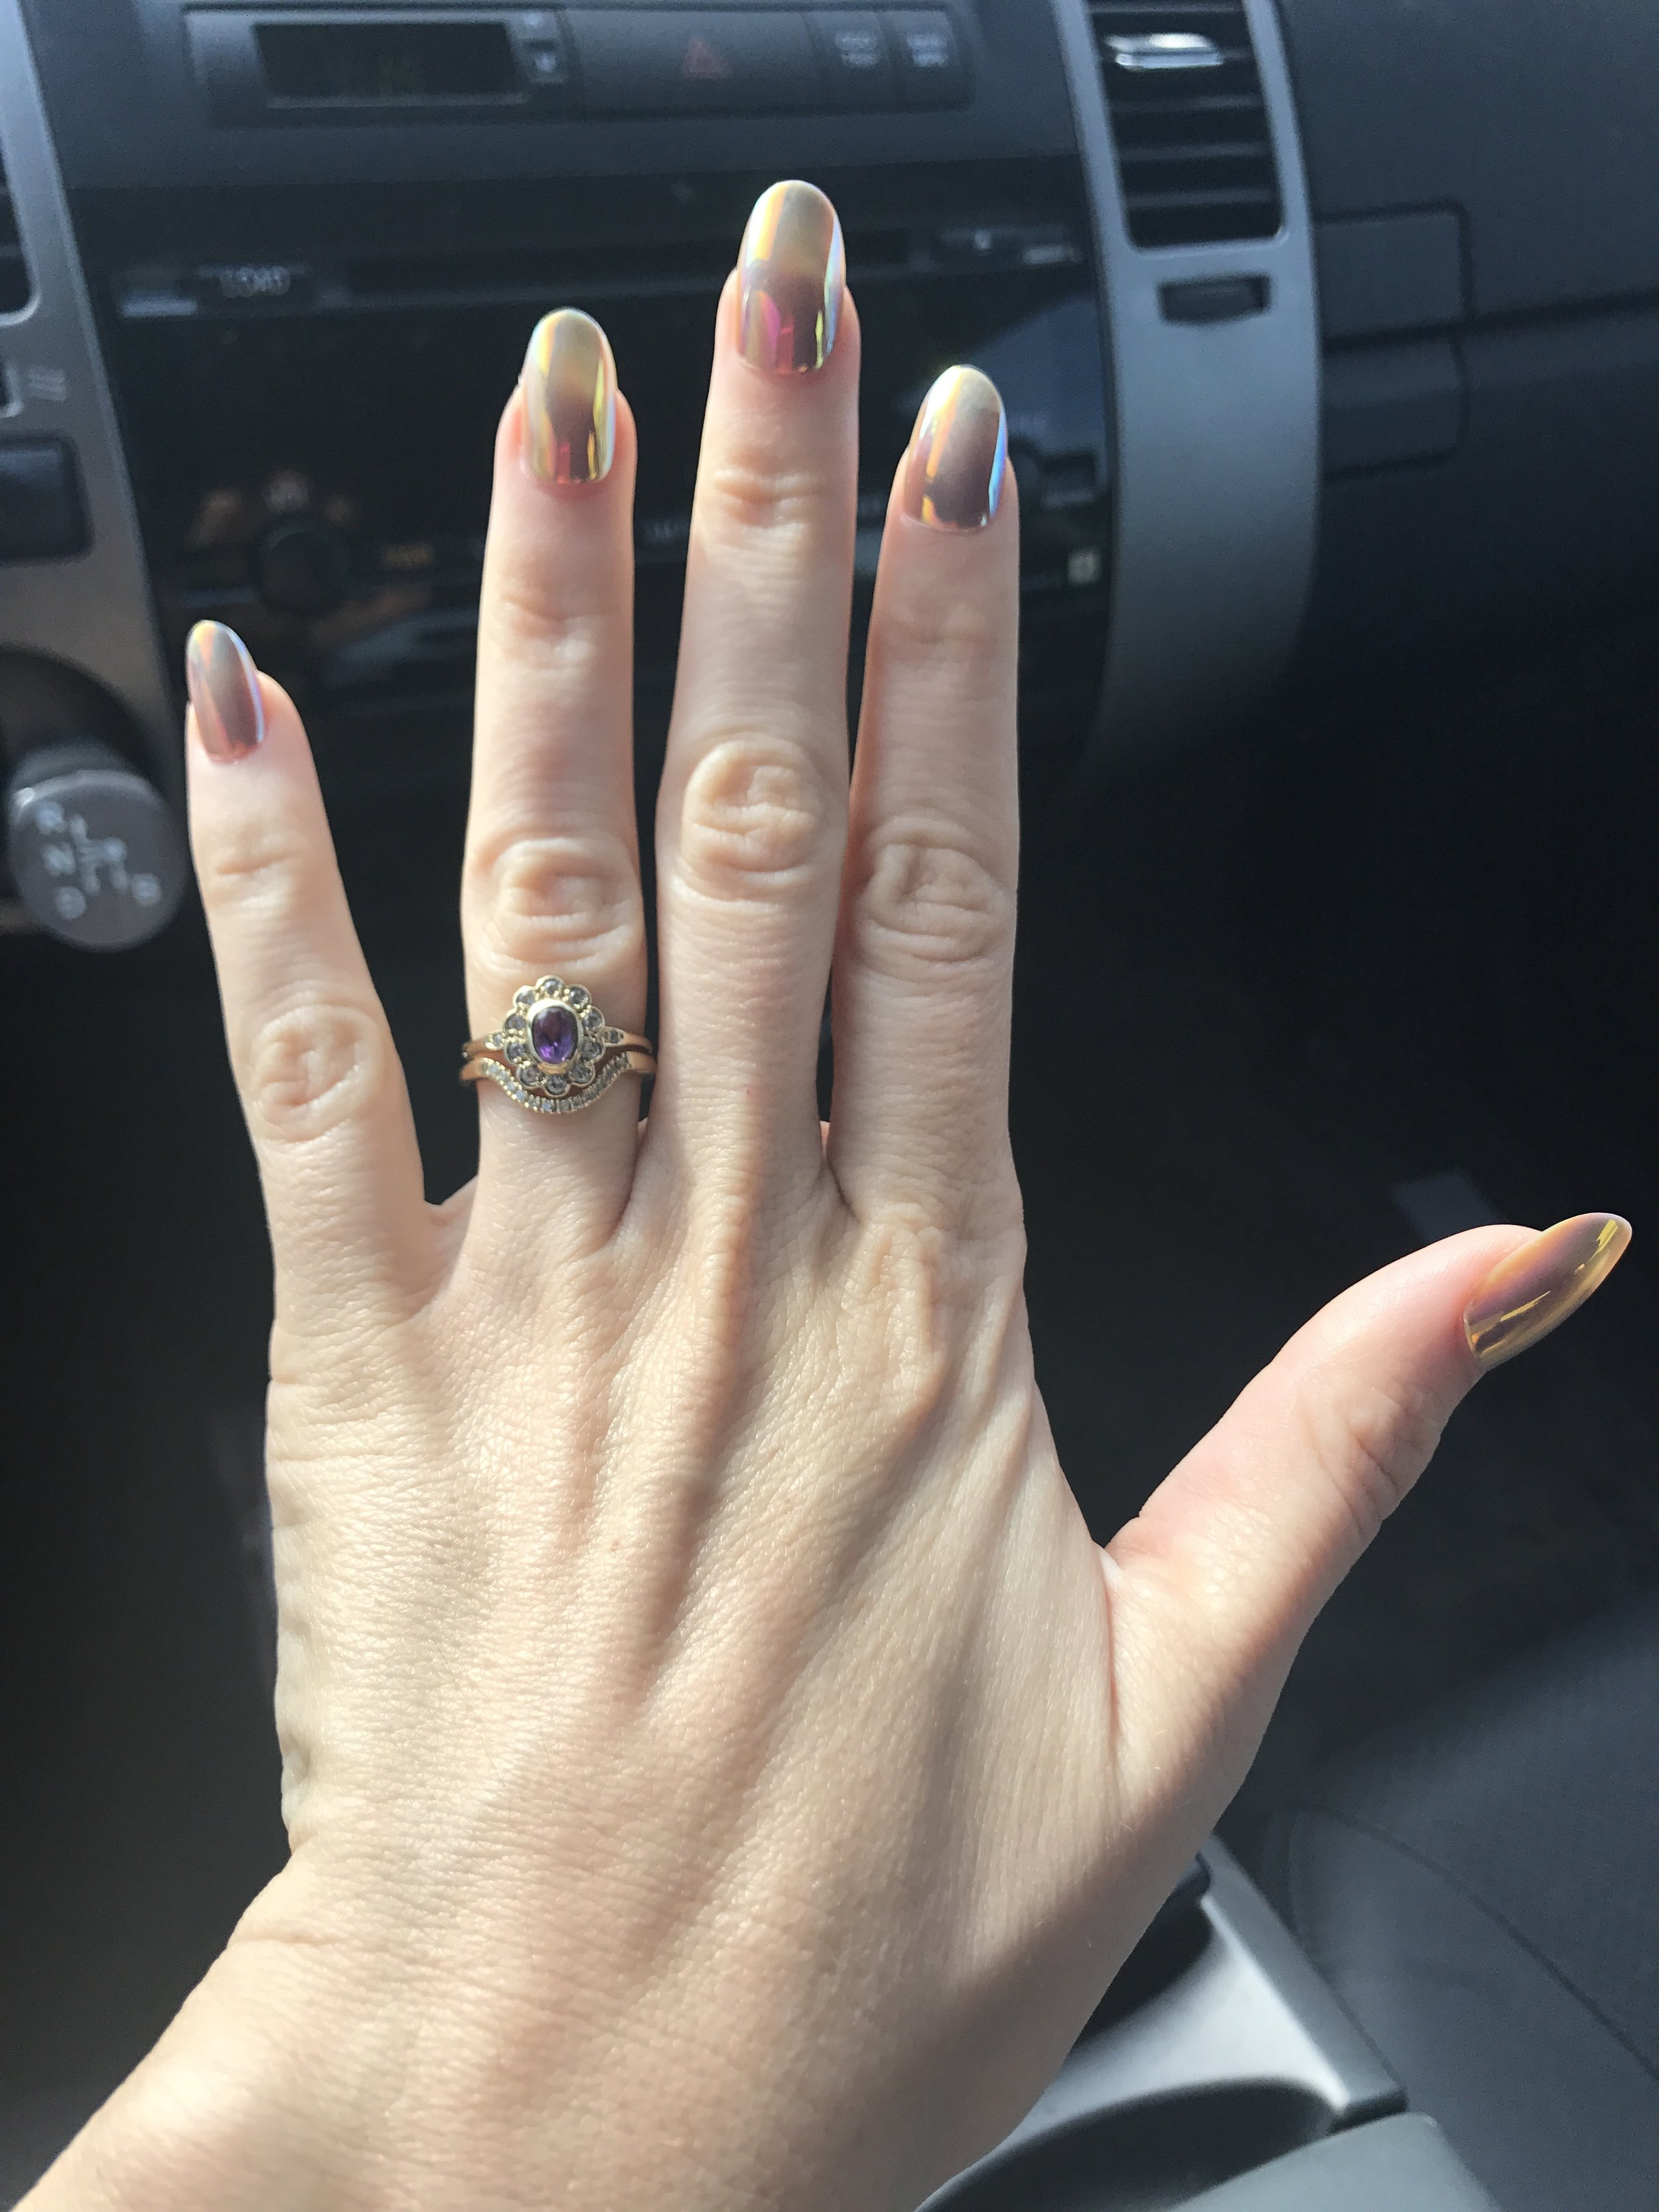 Lime Crime Nails - In Camel